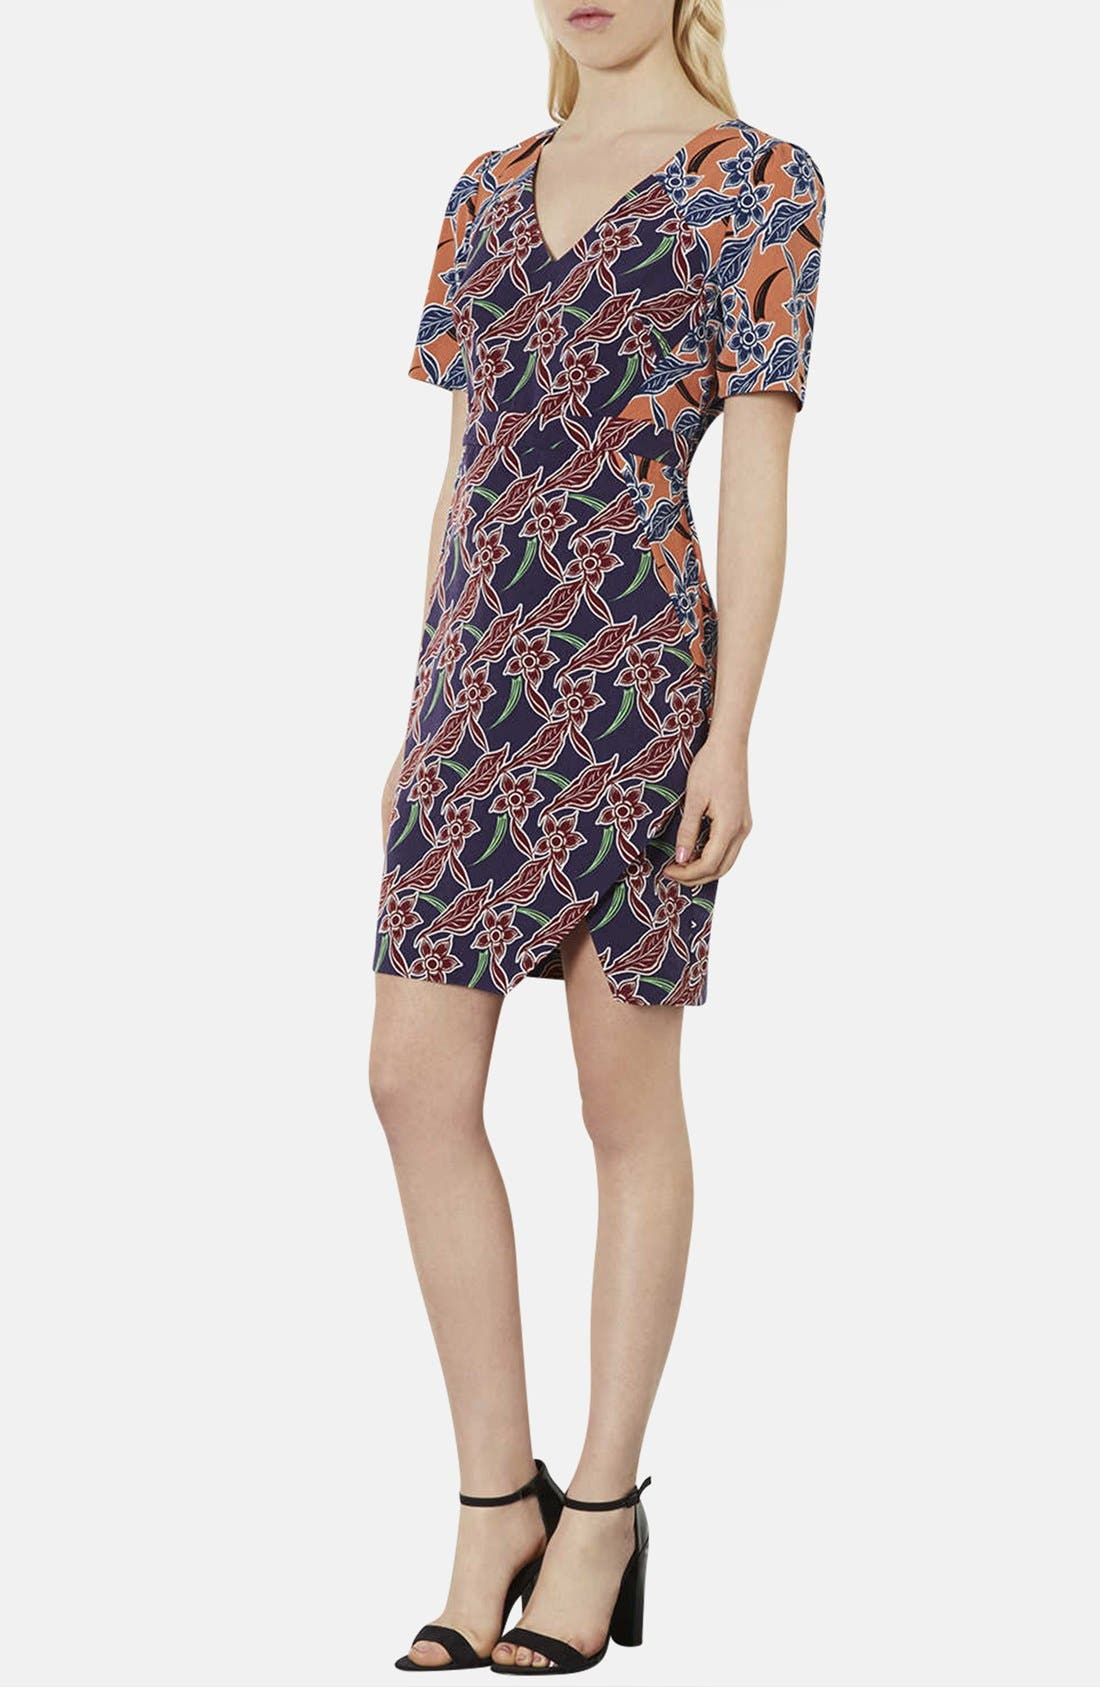 Alternate Image 1 Selected - Topshop 'Cocktail Mix' Tropical Print Tea Dress